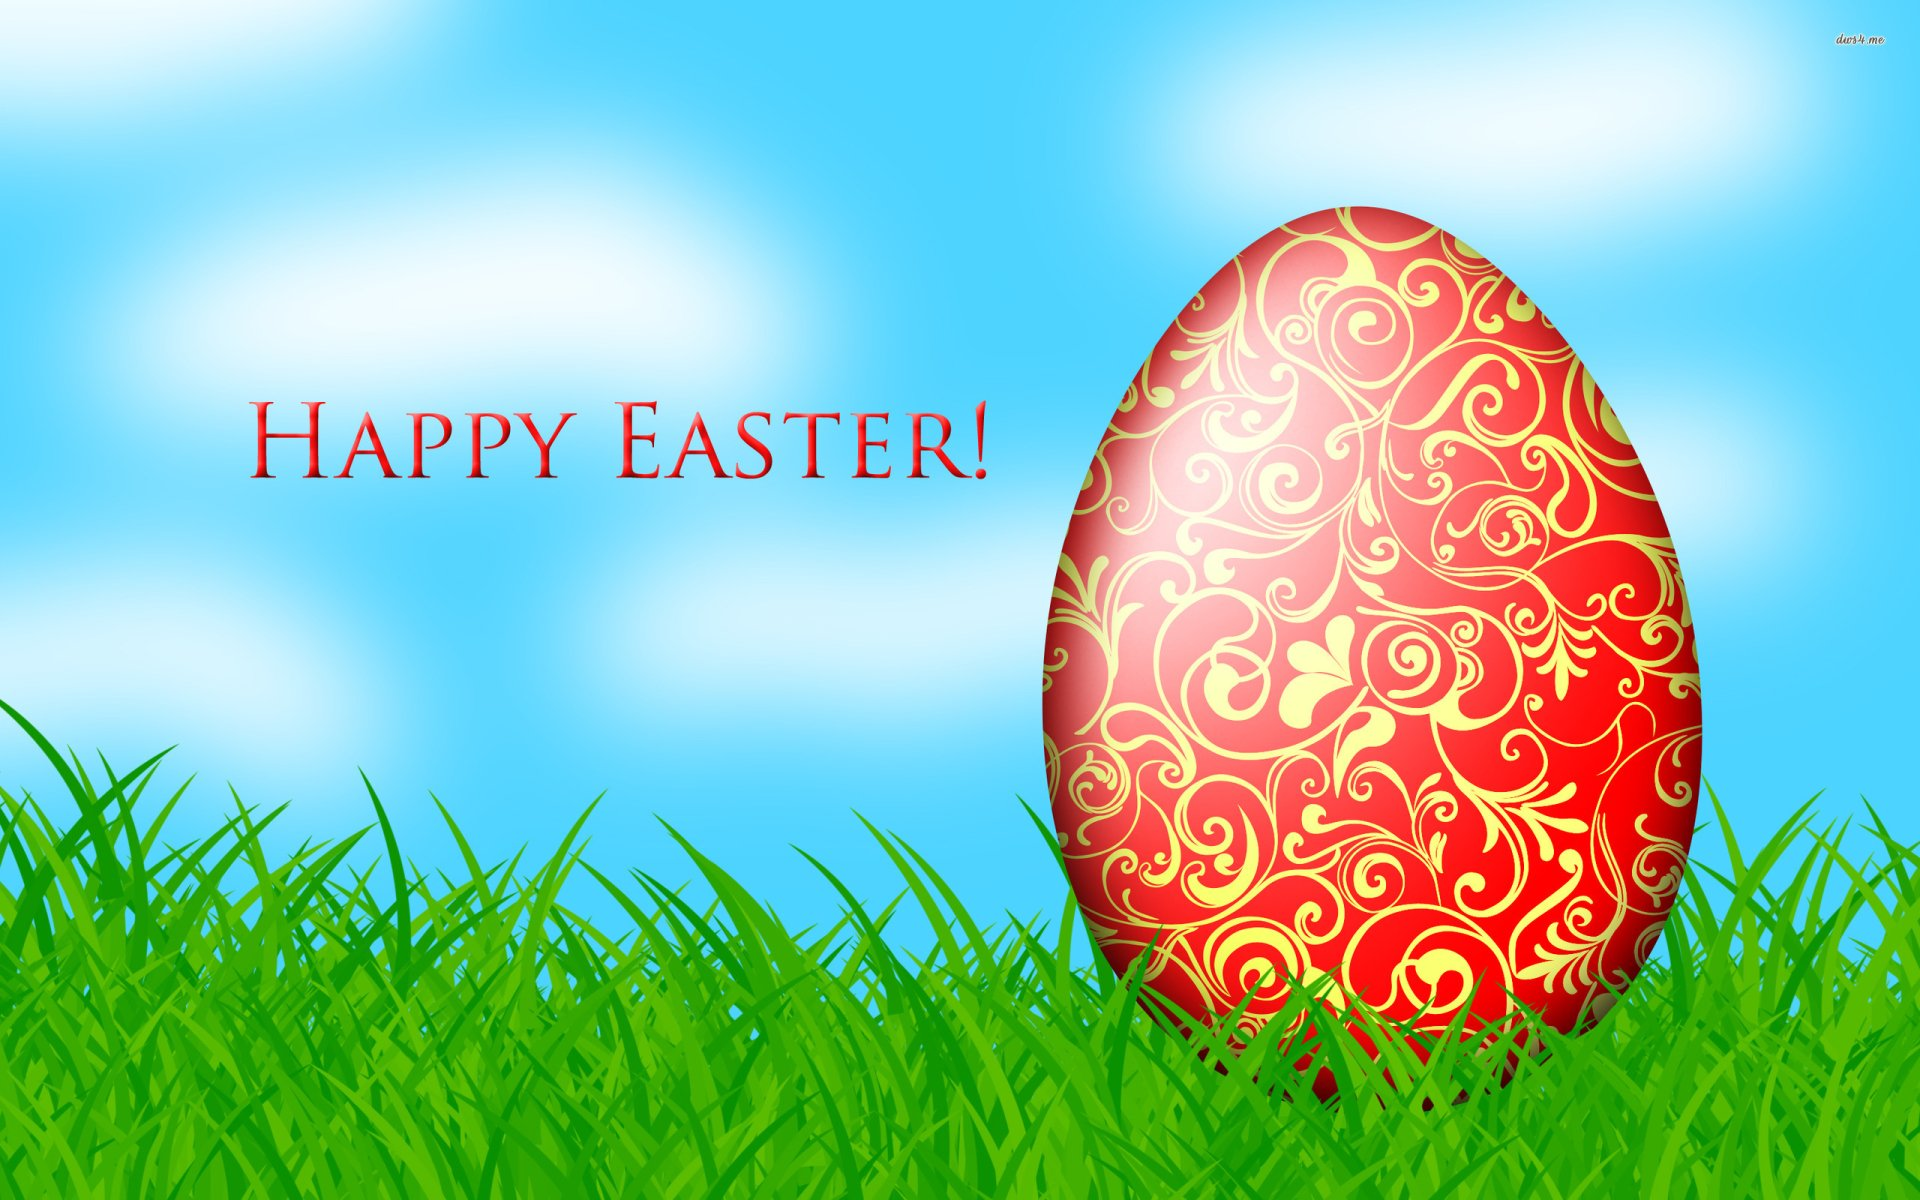 Holiday - Easter  Happy Easter Wallpaper